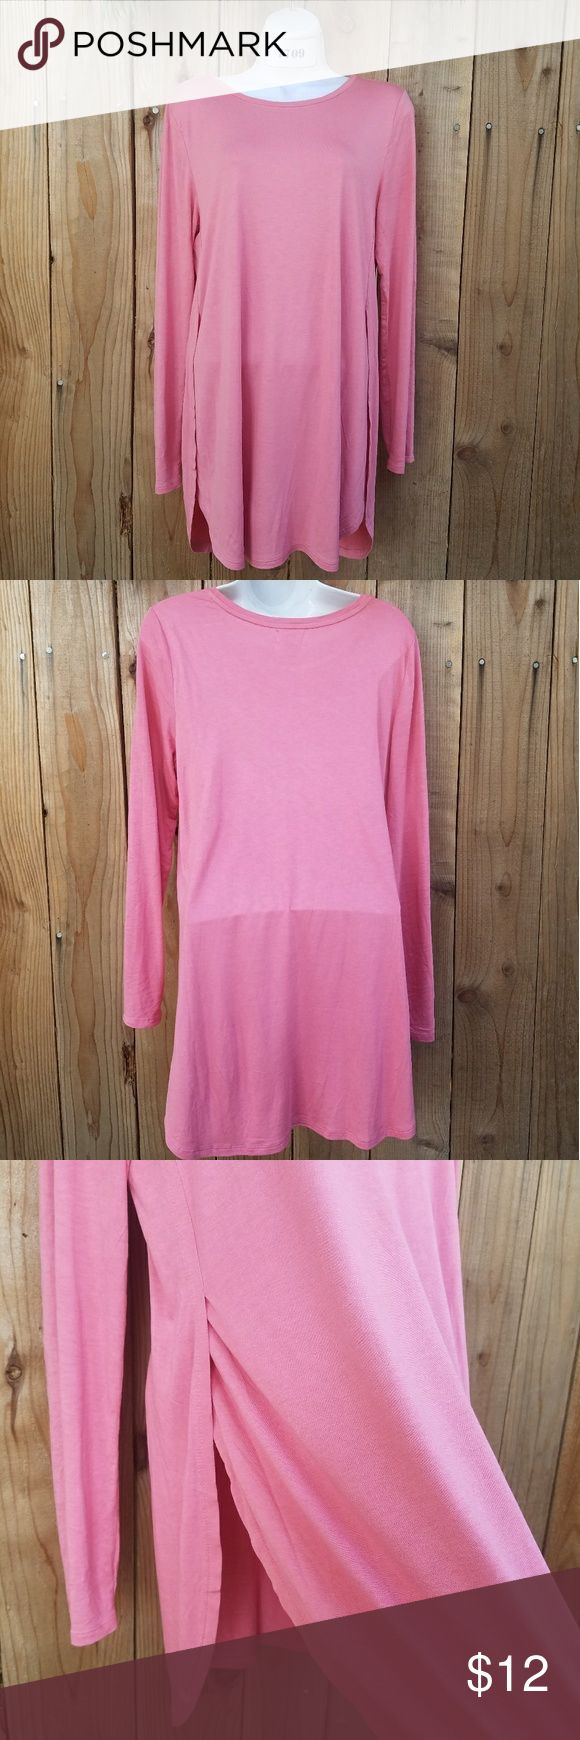 Rose pink long sleeve top Long rose pink long sleeve top with side slits. I took the tags off but never wore. Old Navy Tops Tees - Long Sleeve